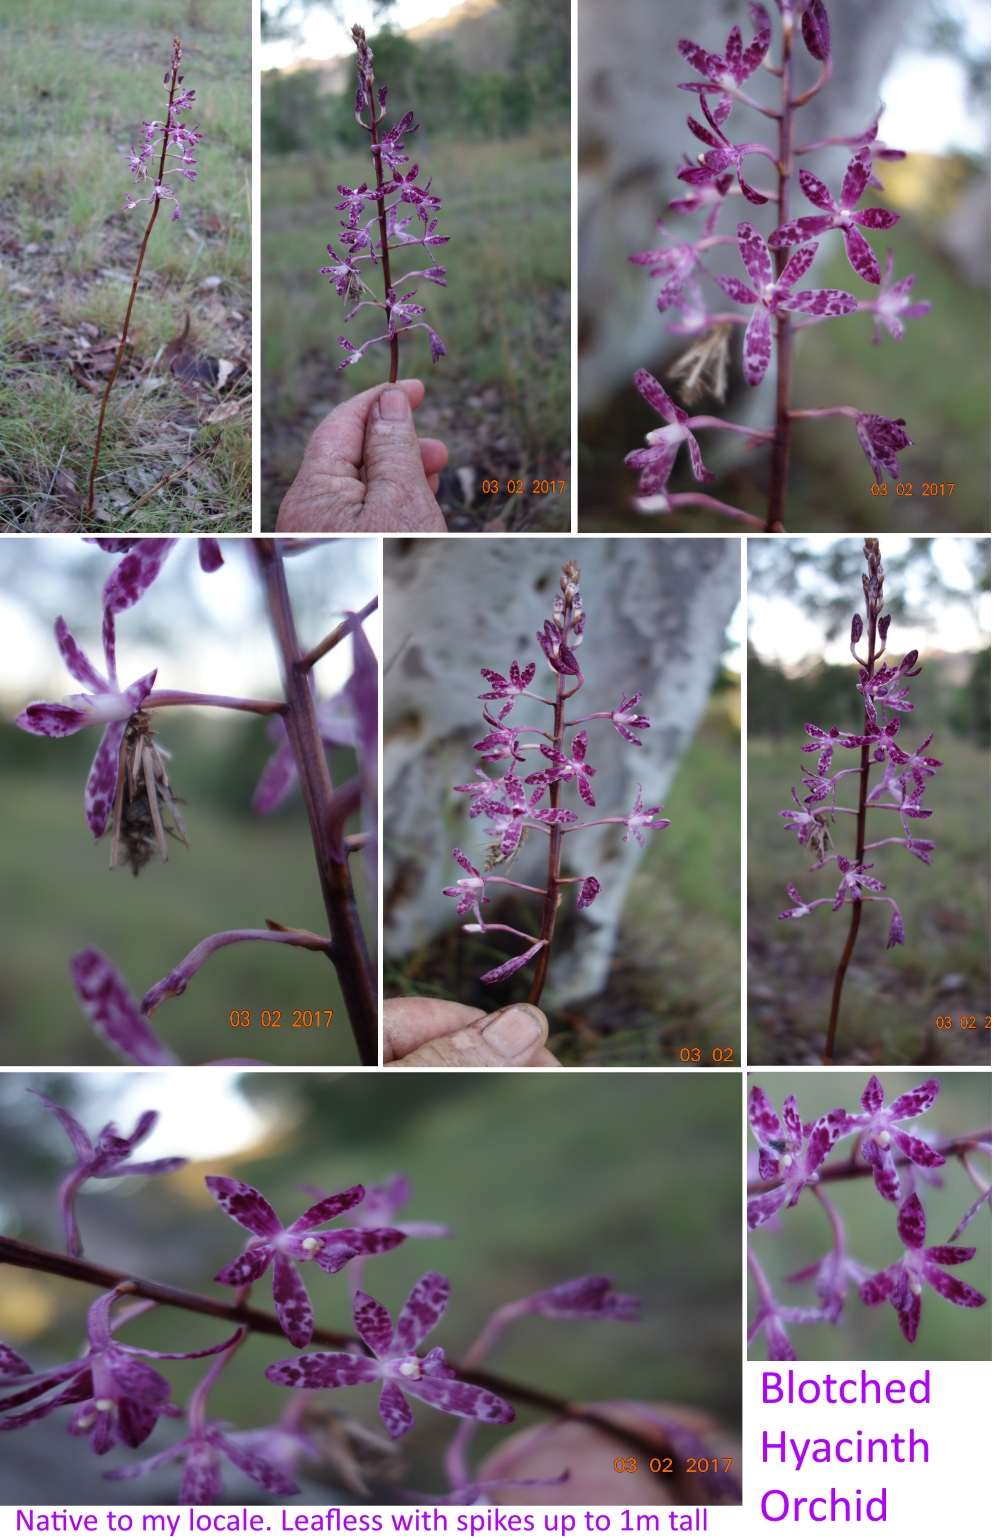 Blotched Hyacinth Orchid collage 3Feb17.jpg